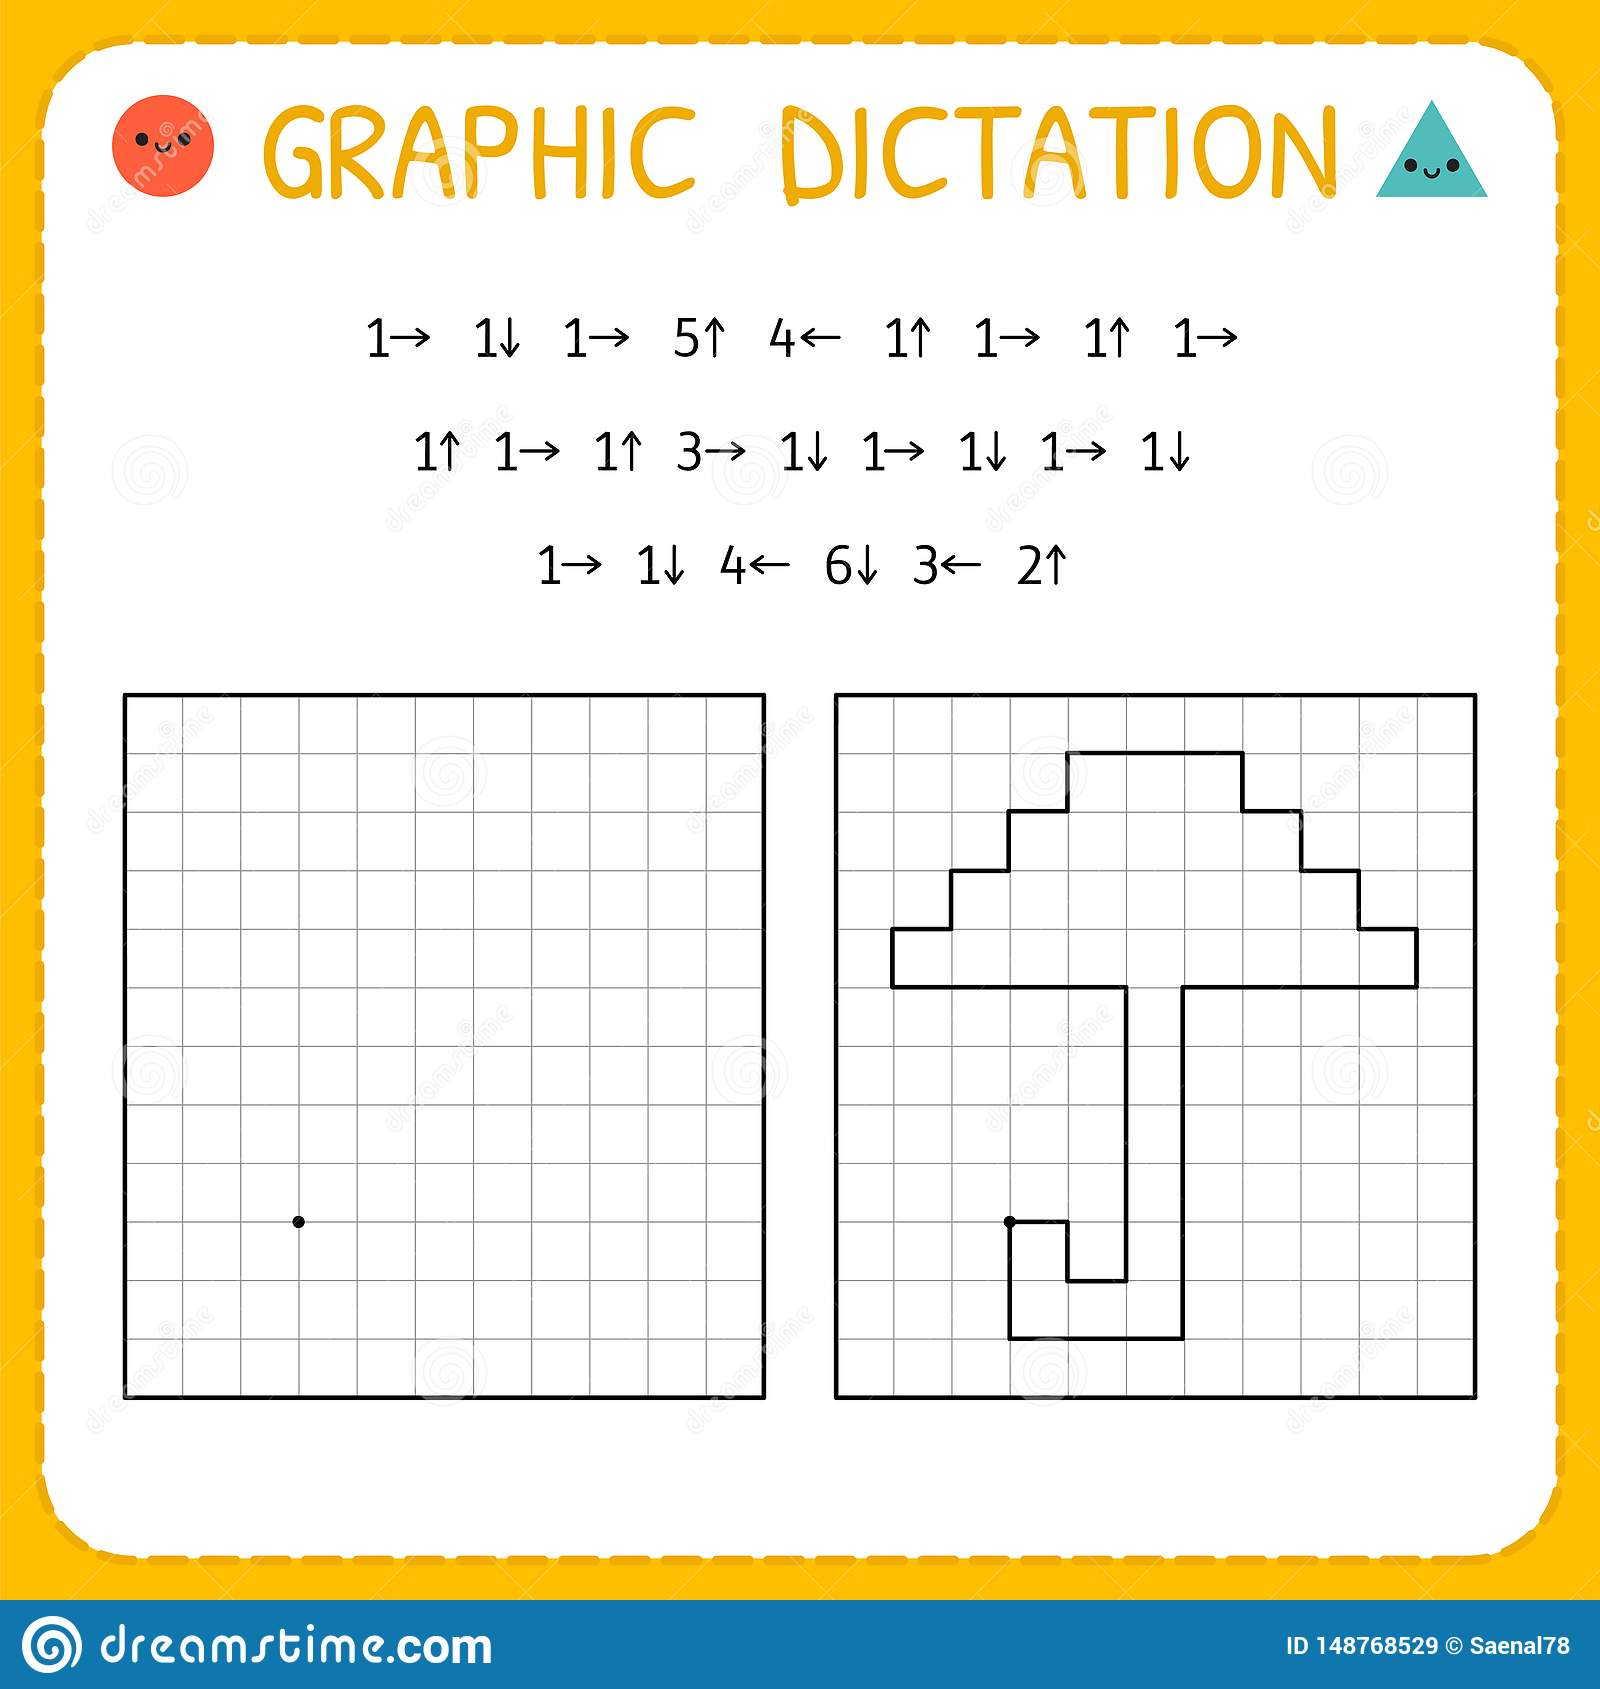 Graphic Dictation Umbrella Kindergarten Educational Game